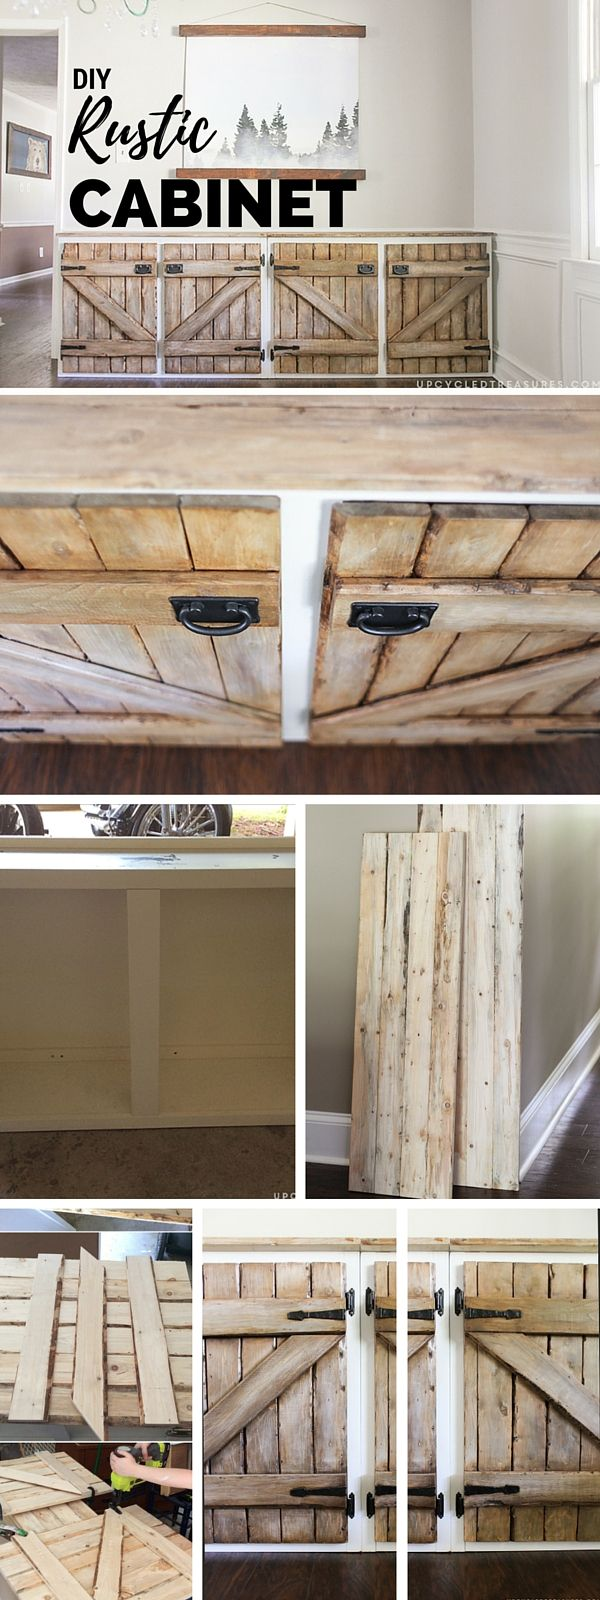 Diy rustic cabinet tutorials craft and diy furniture